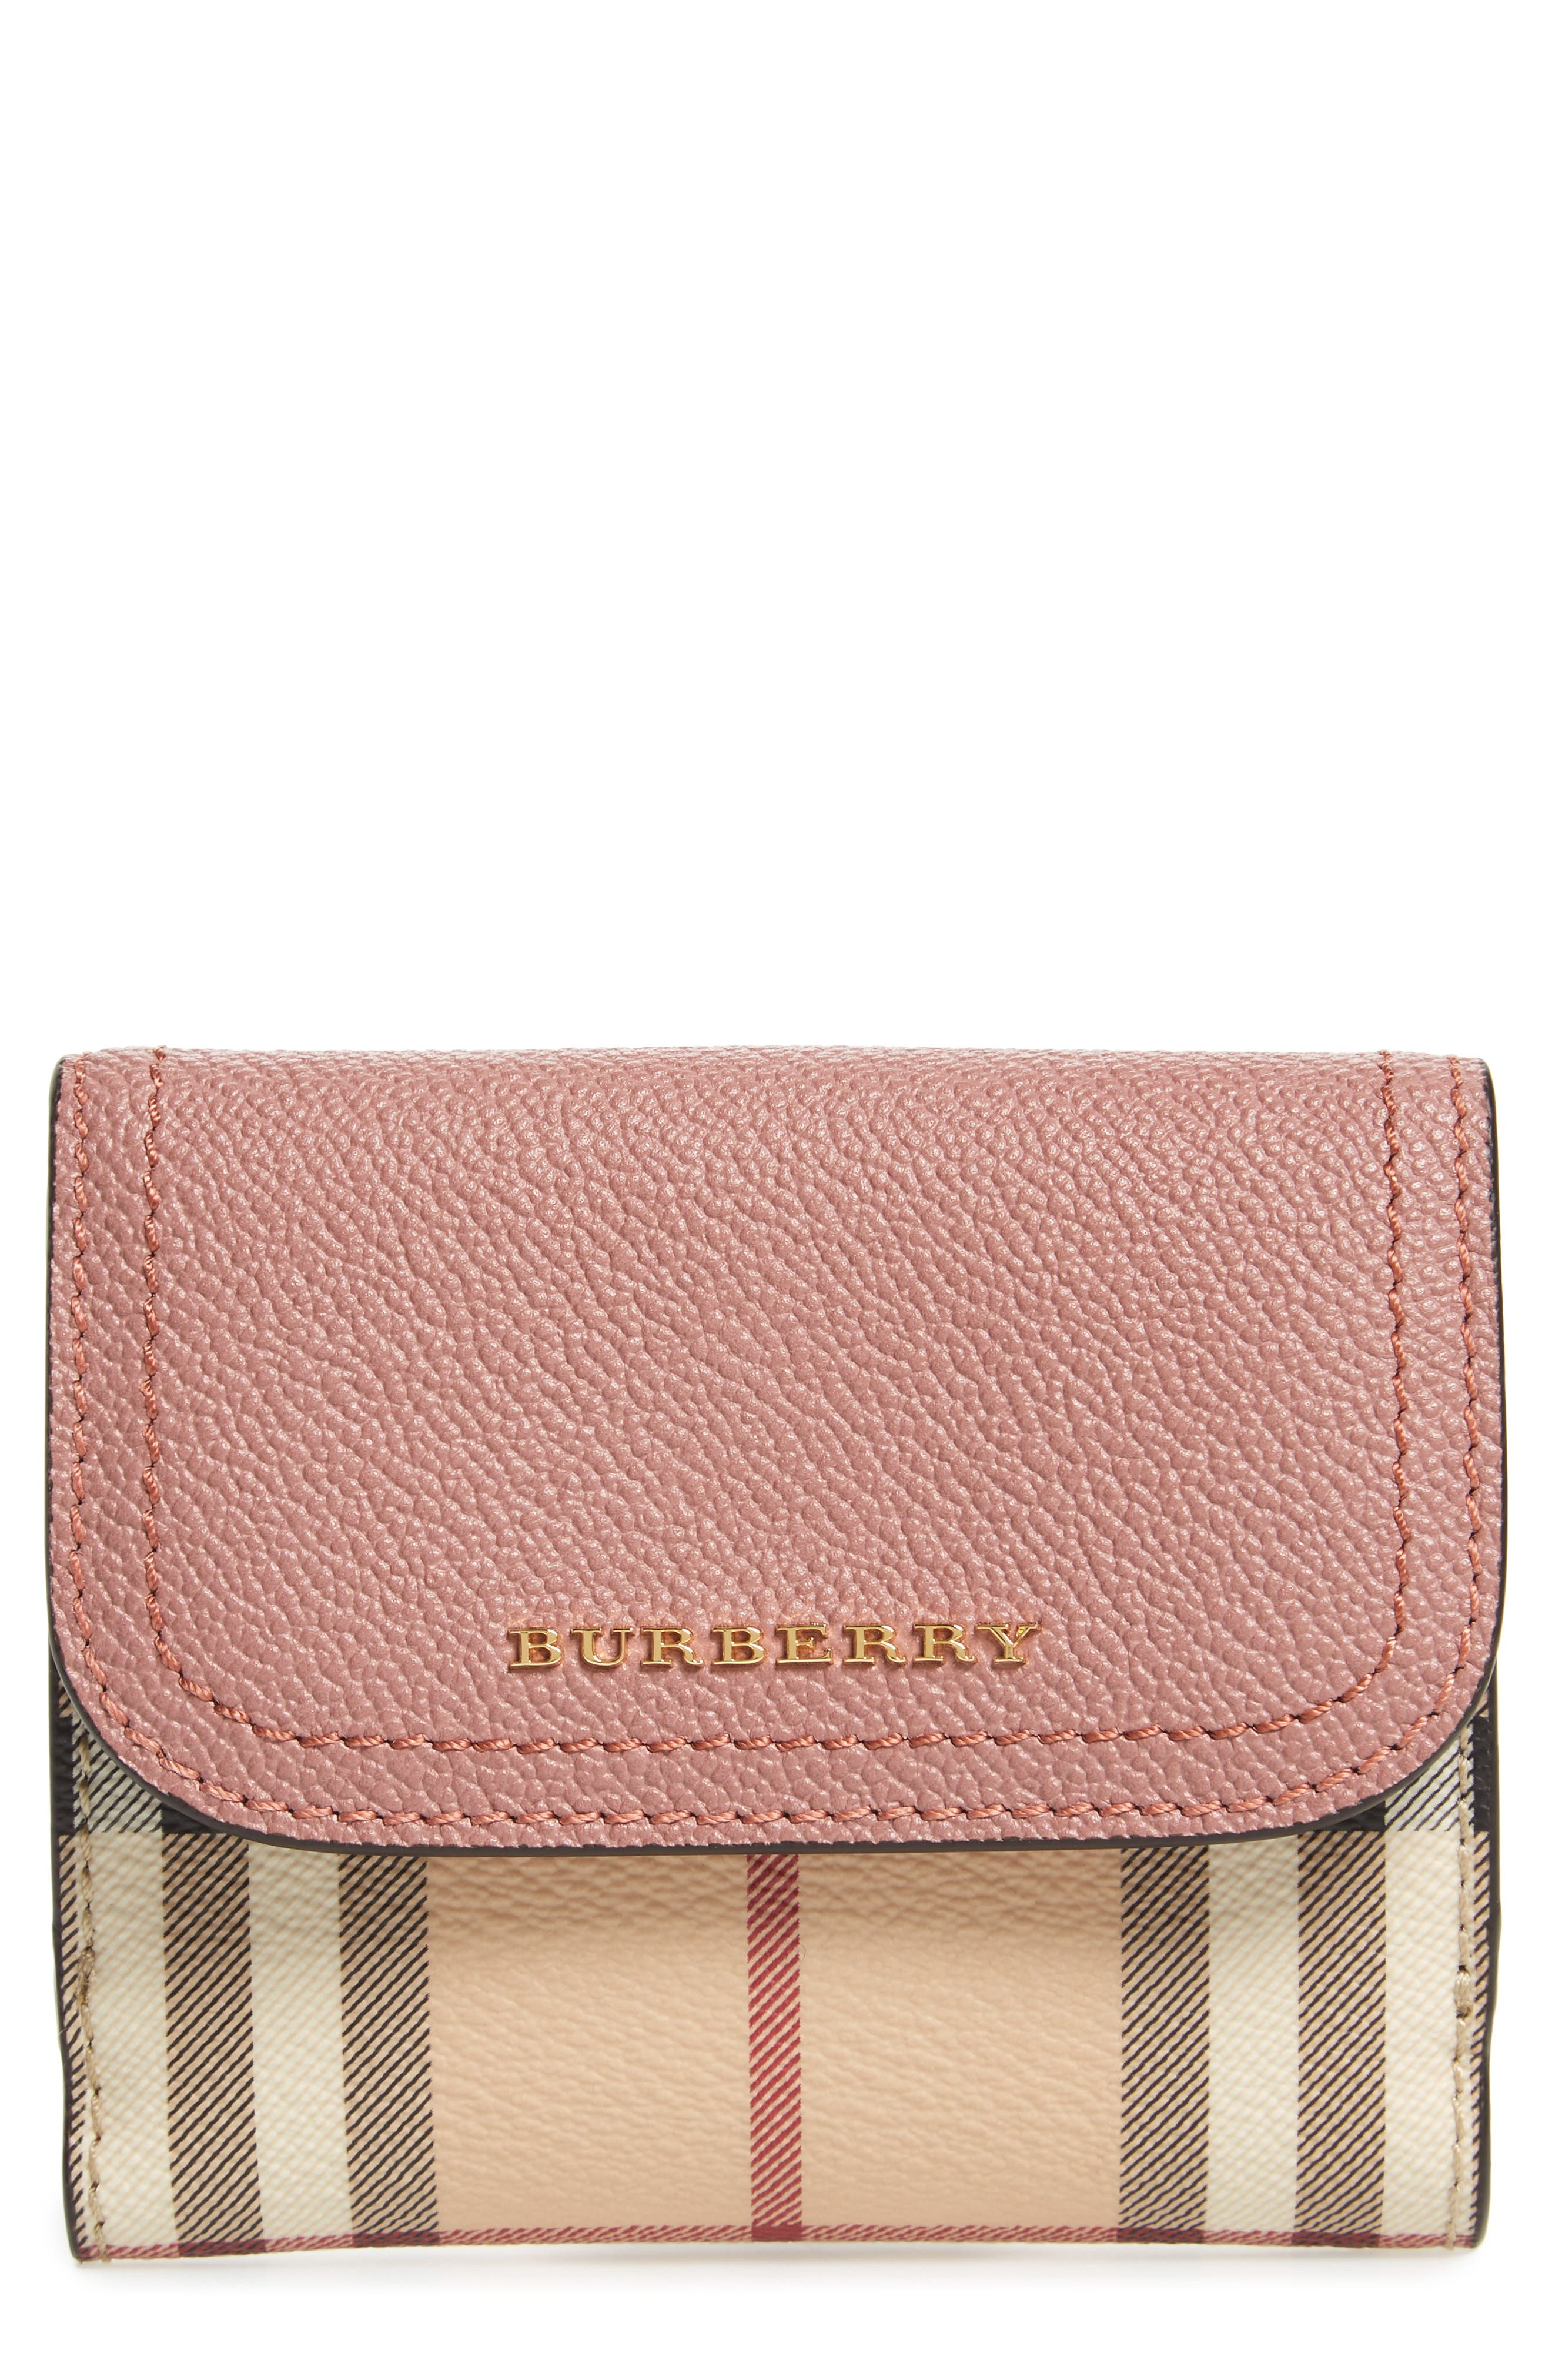 Luna French Haymarket Check Wallet,                             Main thumbnail 1, color,                             Dusty Pink/ Multi